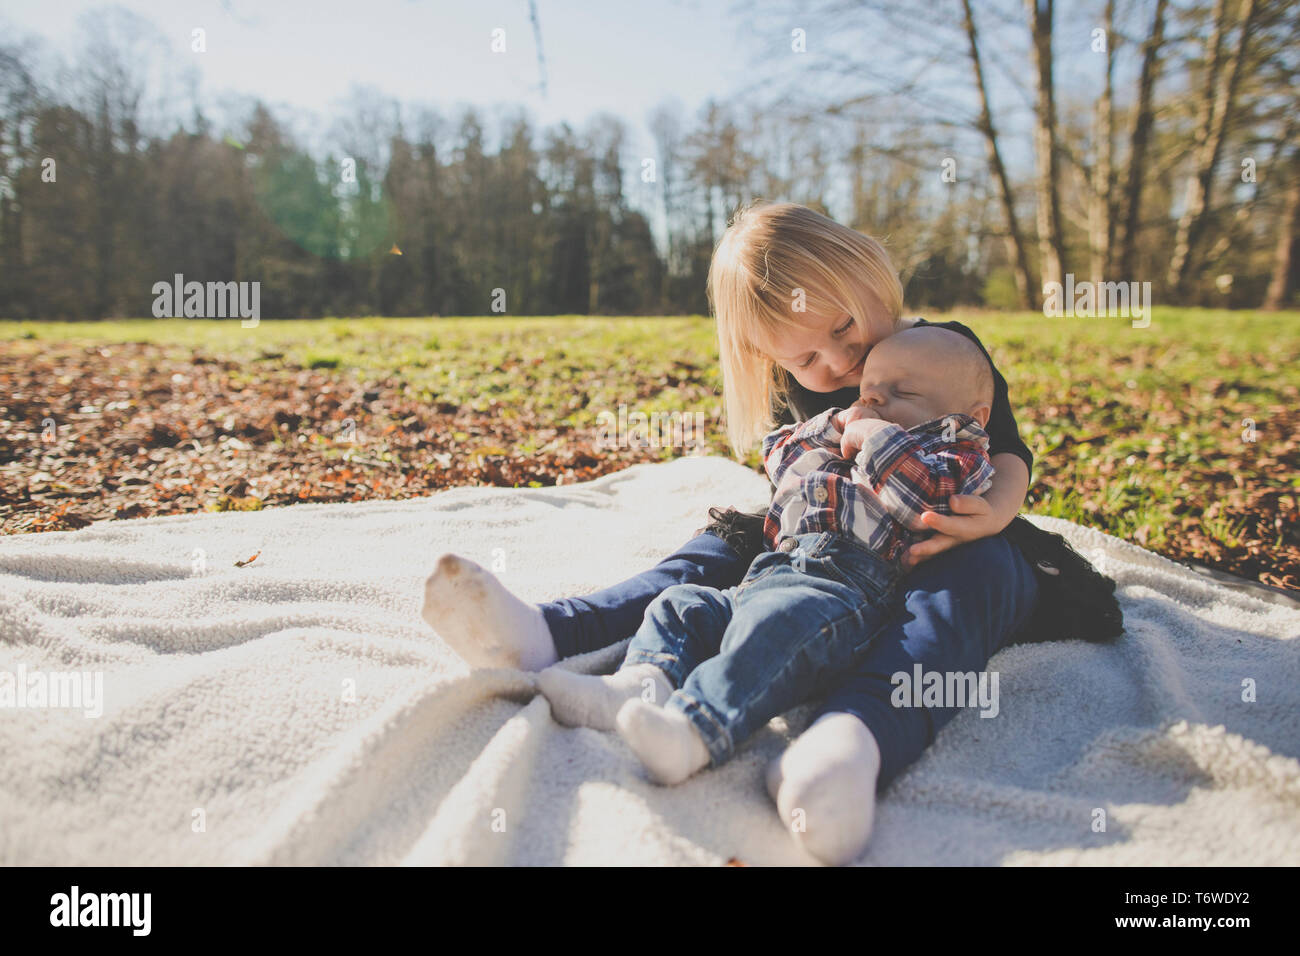 Sister holds her brother while on picnic blanket outside at park Stock Photo